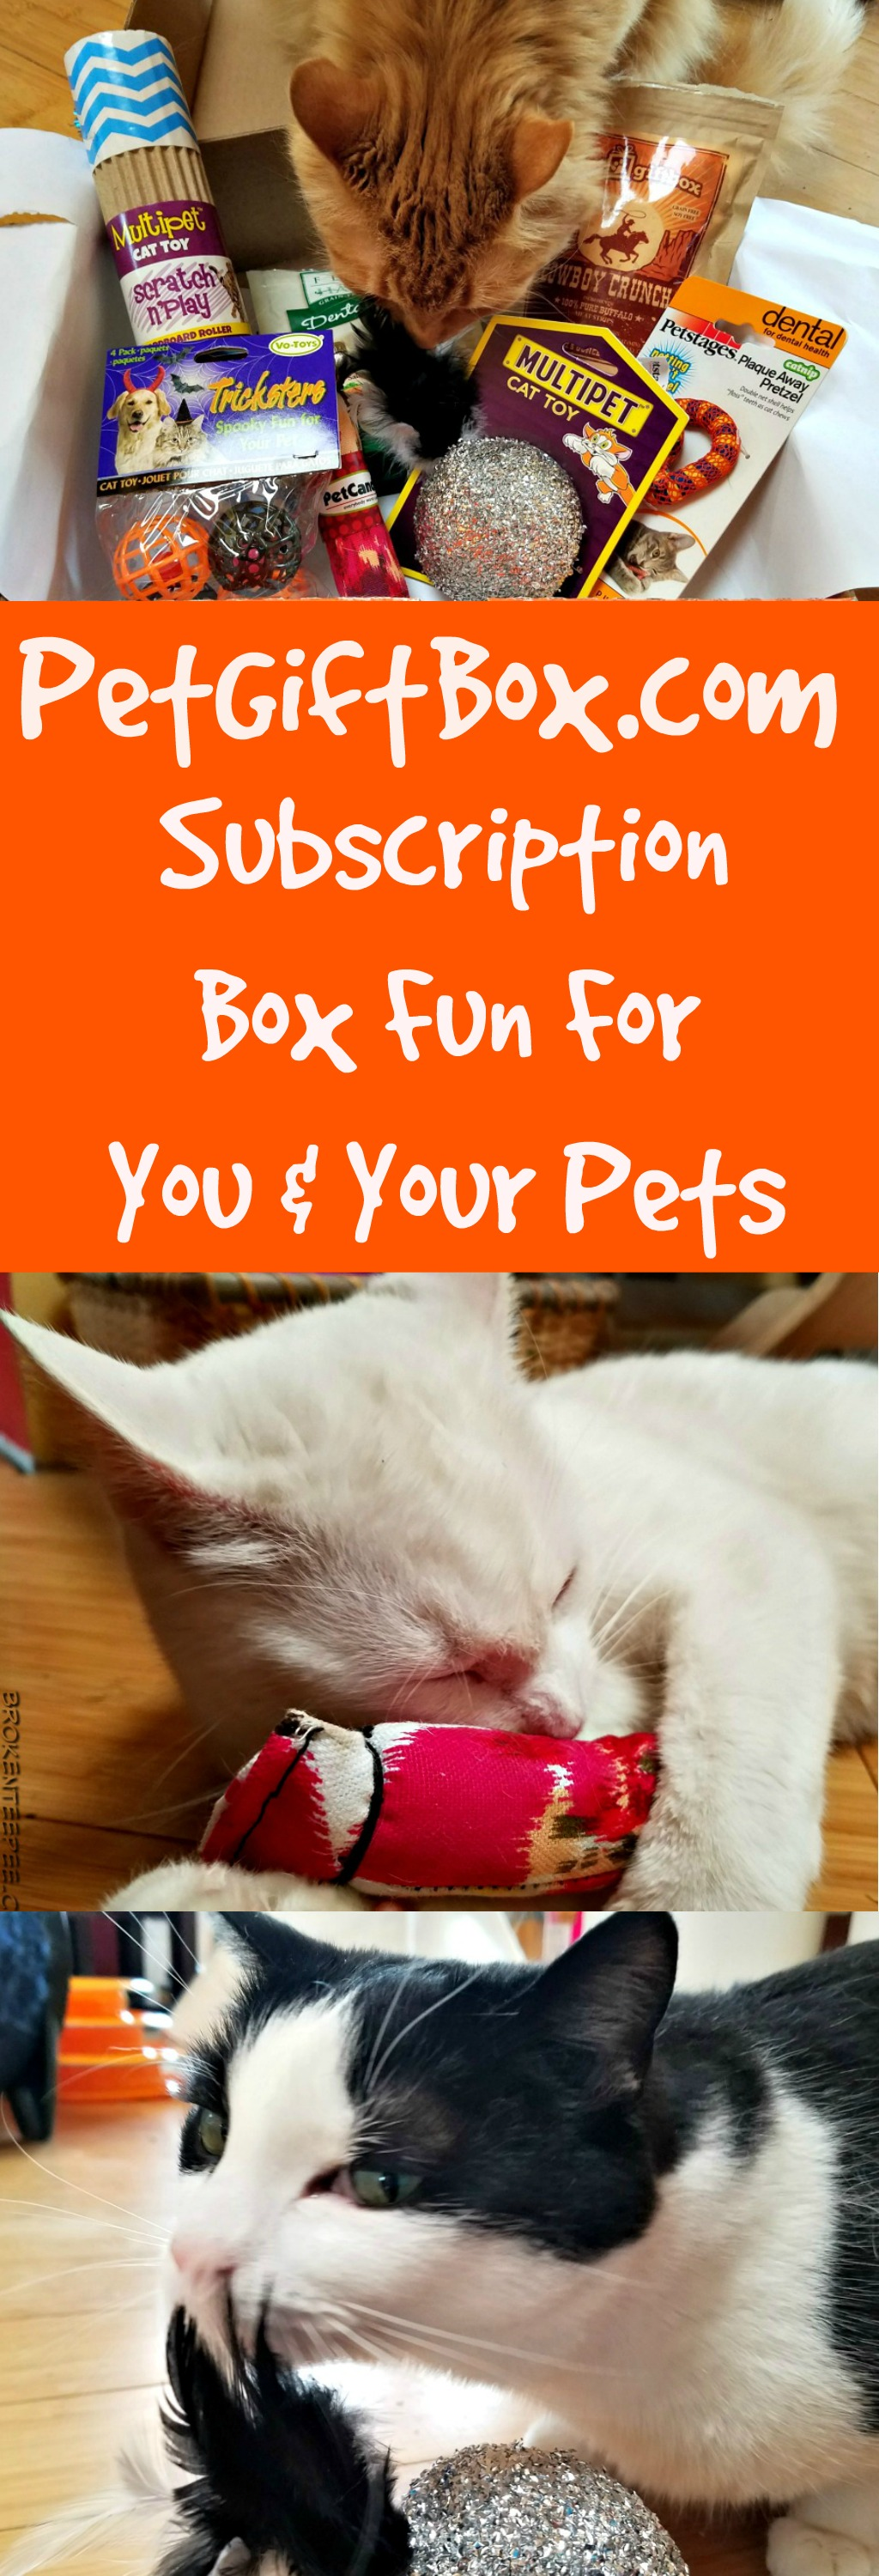 pet subscription box, PetGiftBox.com, cat toys, cat treats, sponsored